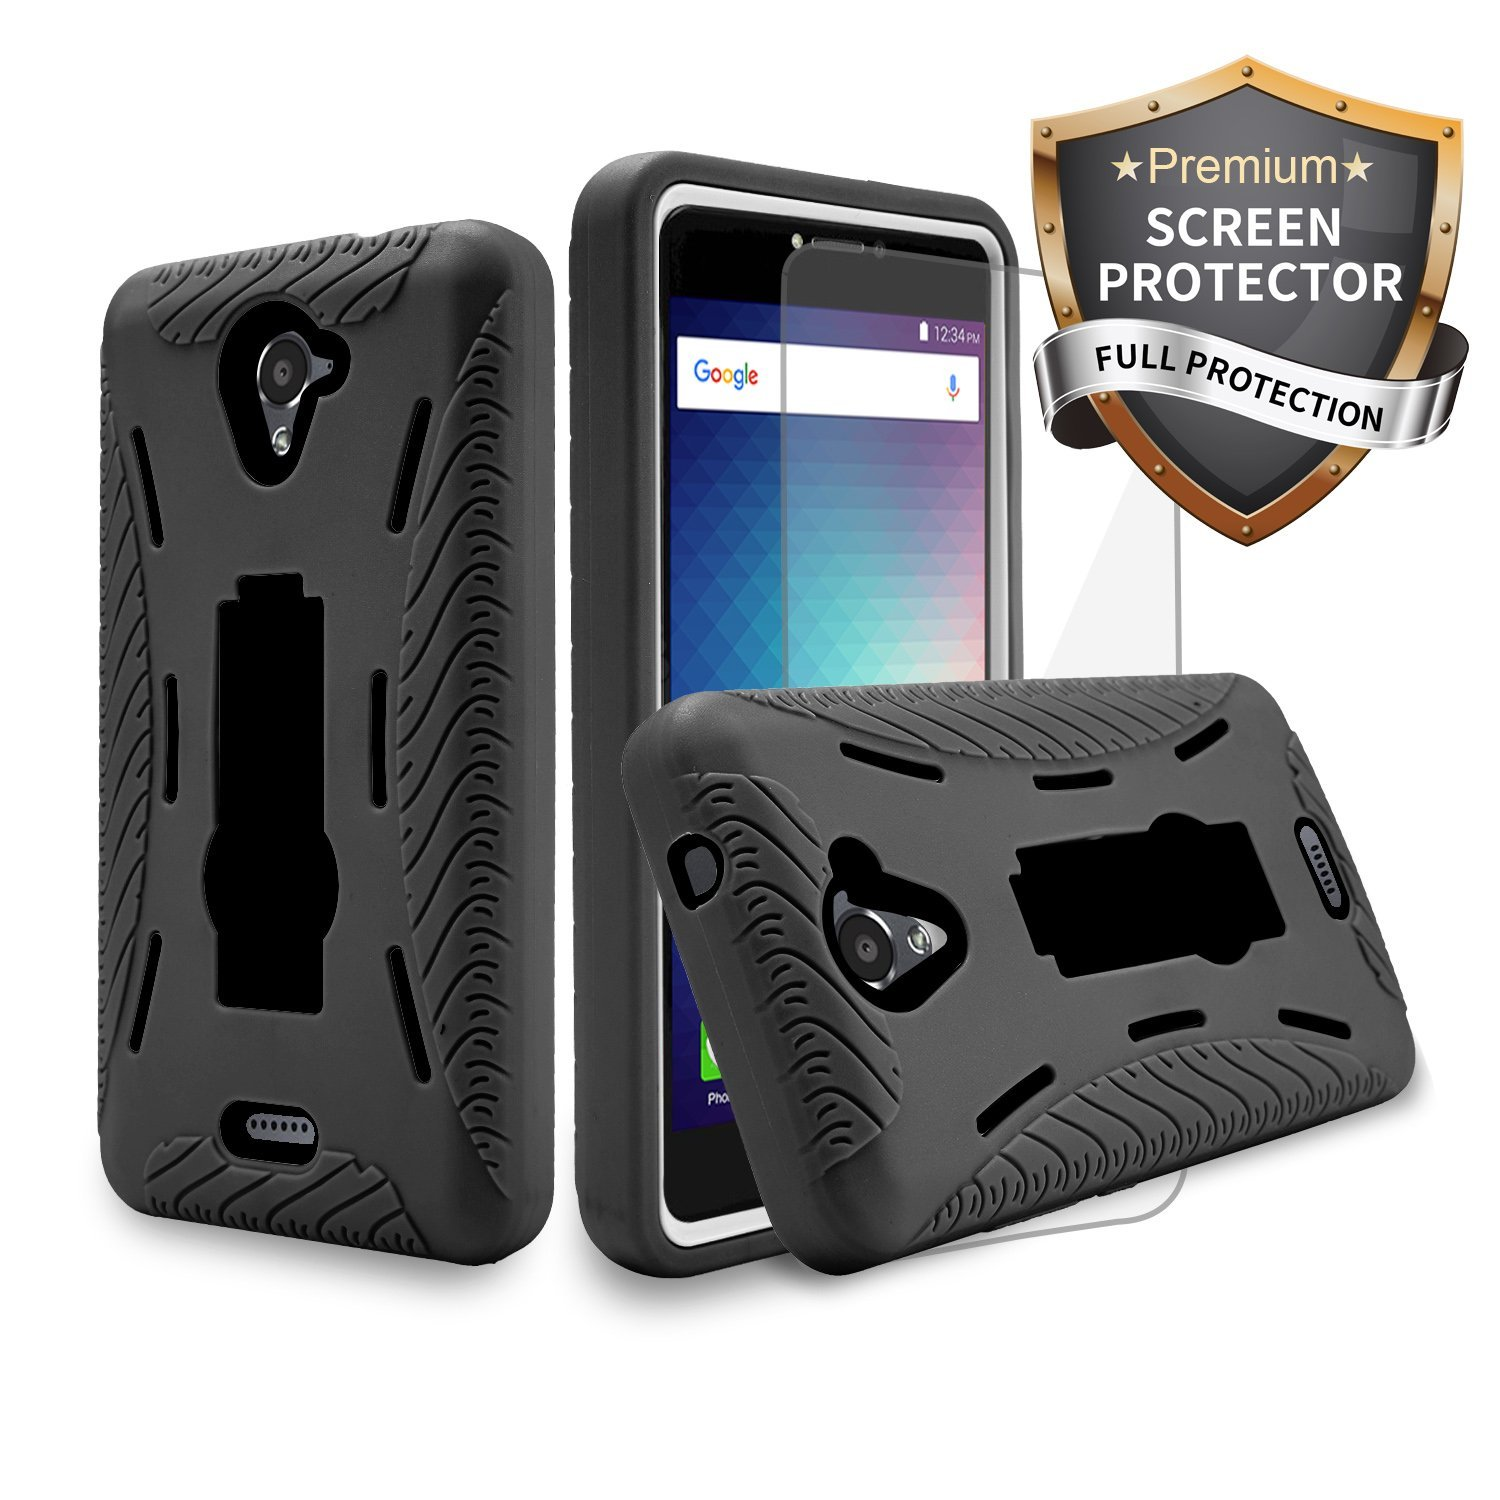 lowest price 2d2a3 b8523 BLU Studio XL 2 S0270UU/ Studio Mega/ Advance A6 Cellphone Case Heavy Duty  Rugged Hard Cover Hybrid Kickstand Case With Clear Screen Protector Film ...